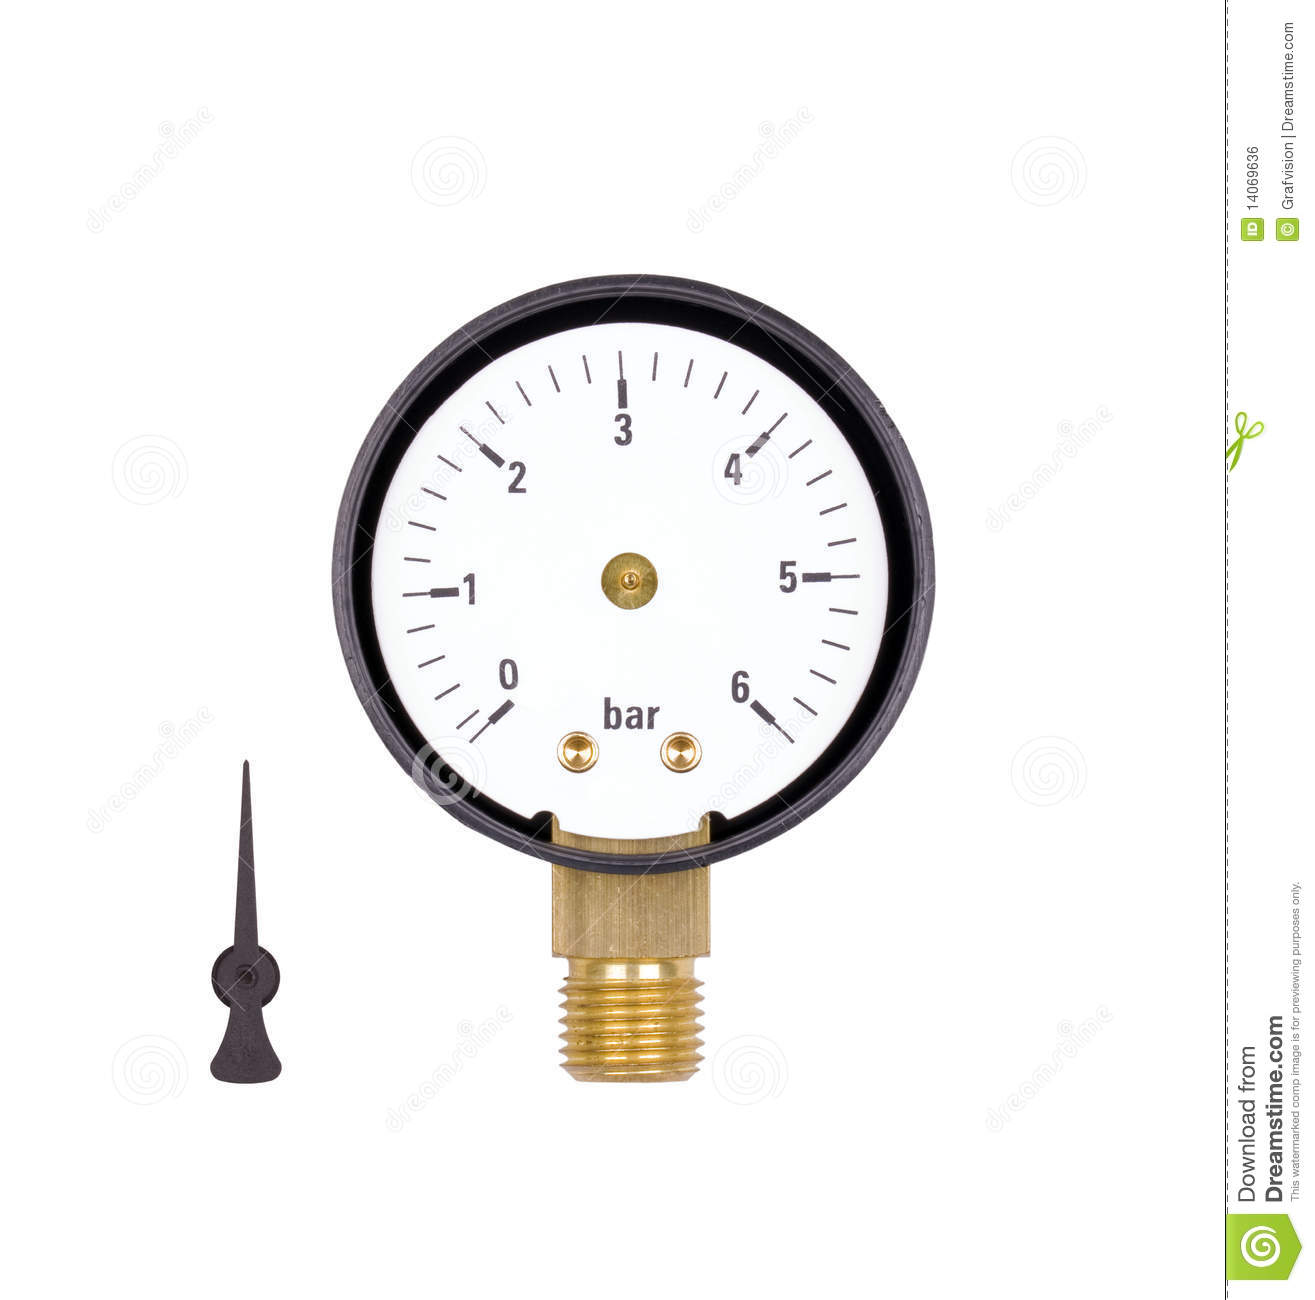 Manometer clipart - Clipground